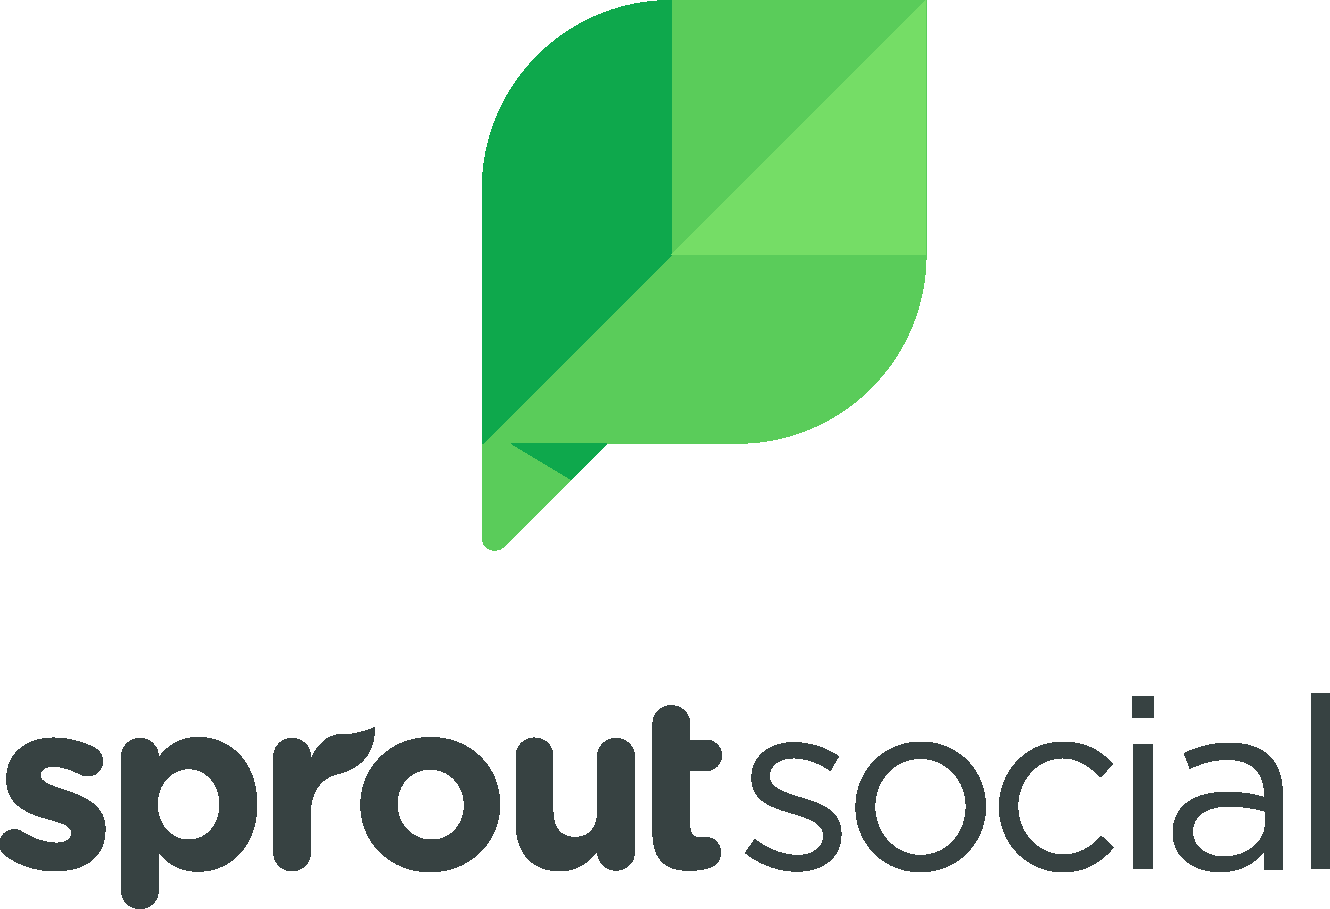 Sprout Social Logo png